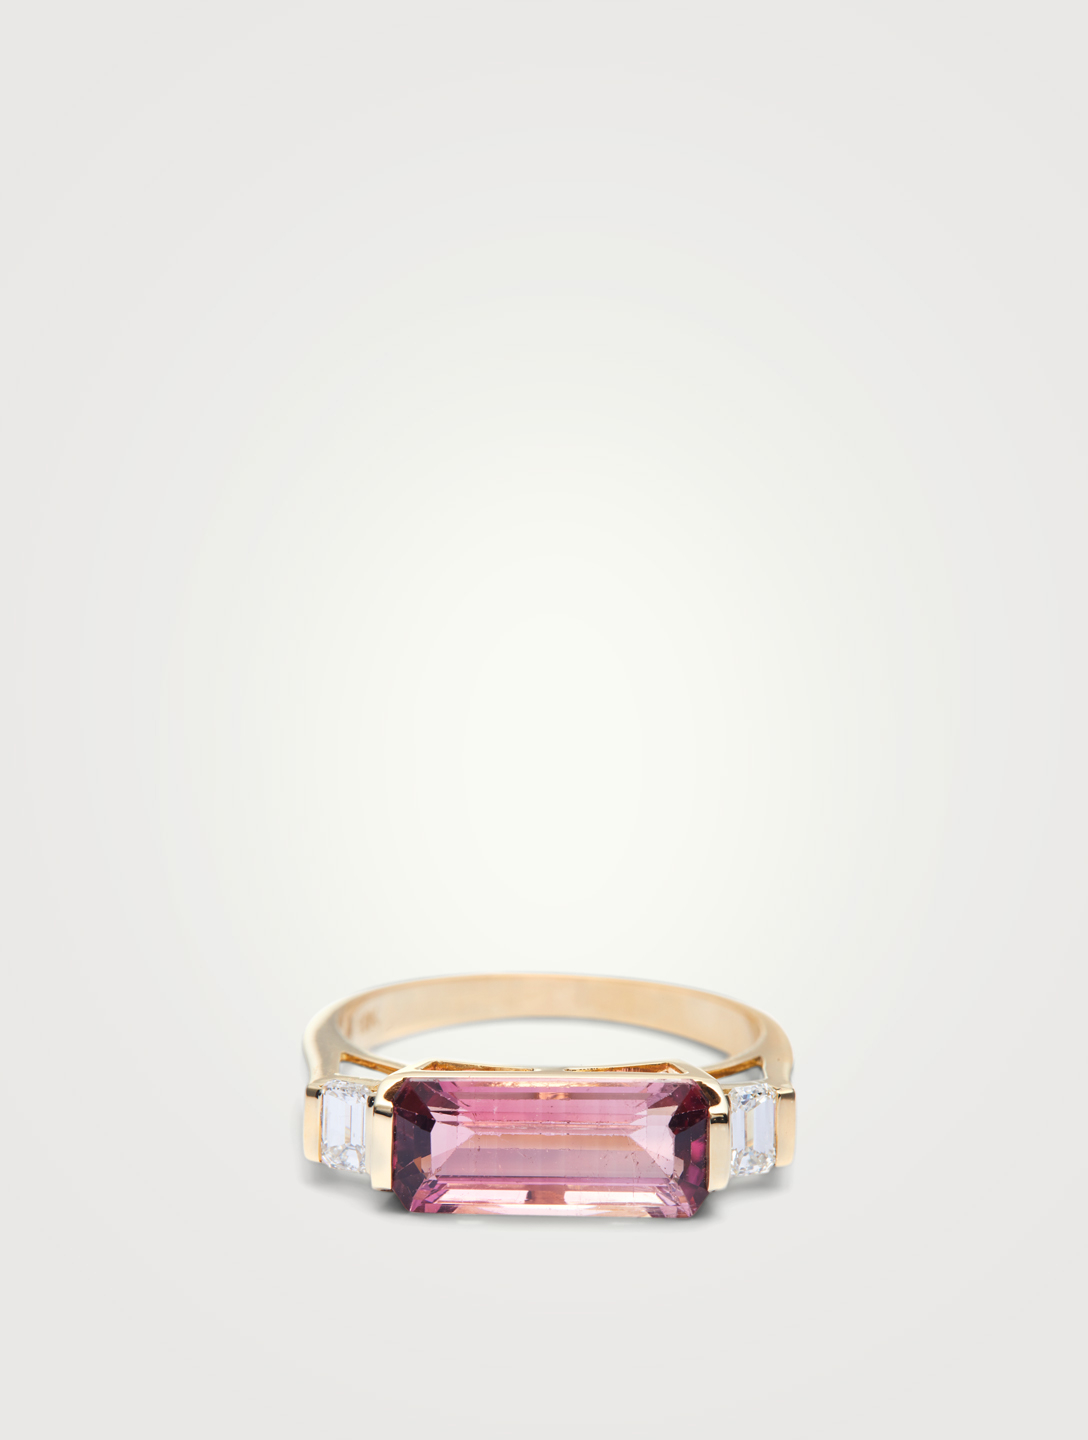 YI COLLECTION 18K Gold East West Ring Pink Tourmaline And Diamonds Women's Metallic